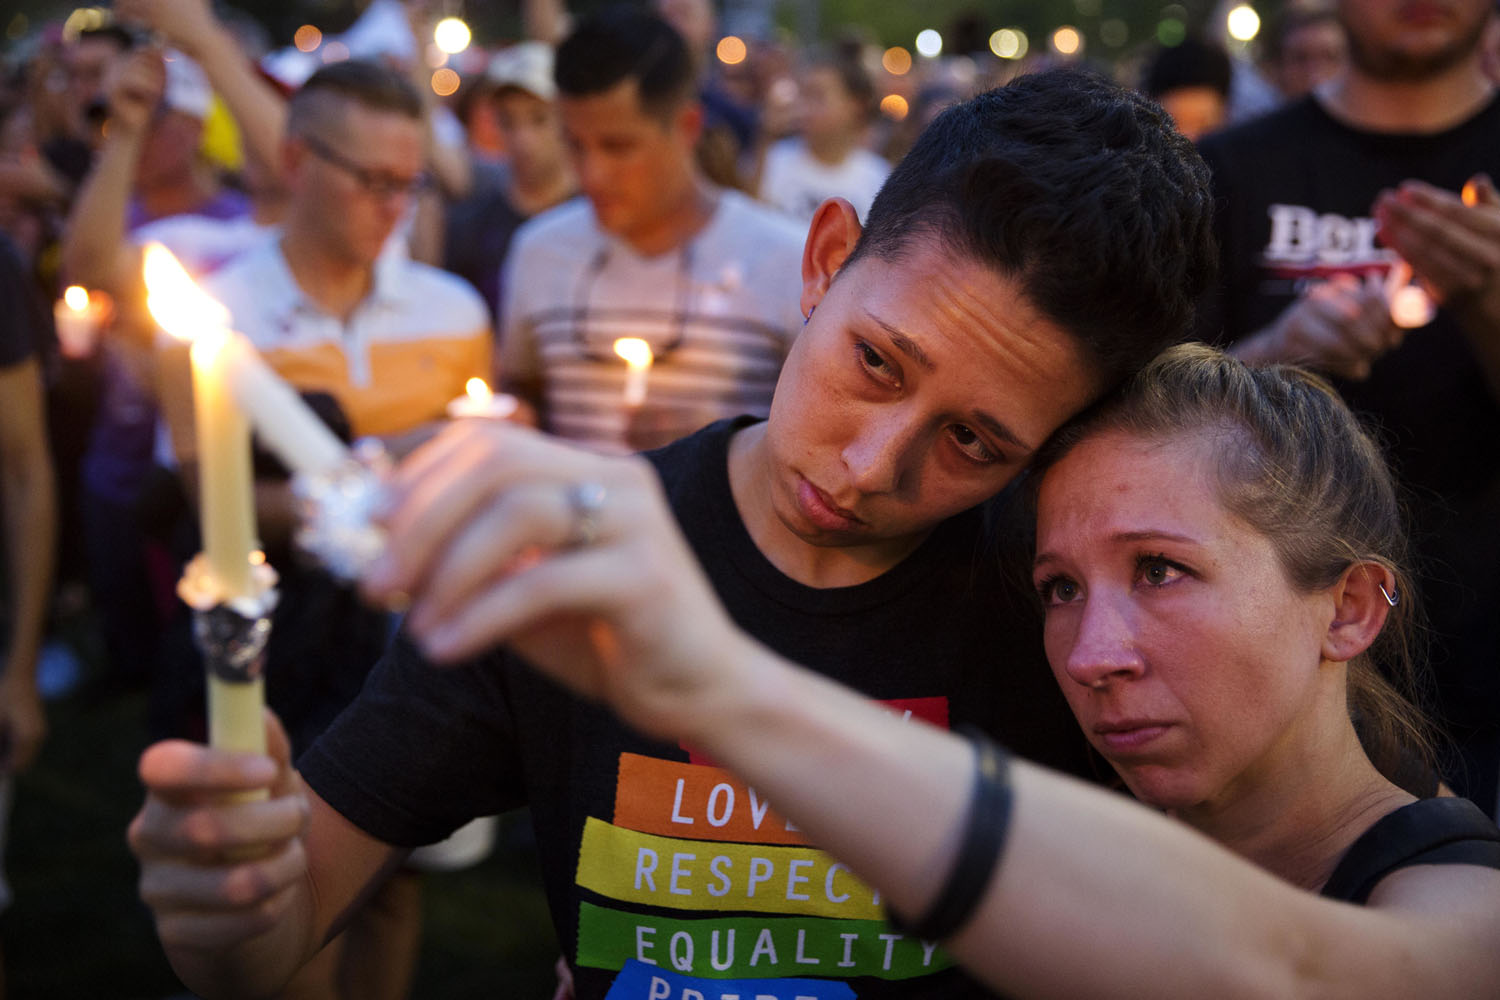 In this Monday, June 13, 2016 file photo, Jennifer, right, and Mary Ware light candles during a vigil in Orlando, Fla., for the victims of the mass shooting at the Pulse nightclub. (David Goldman / AP)